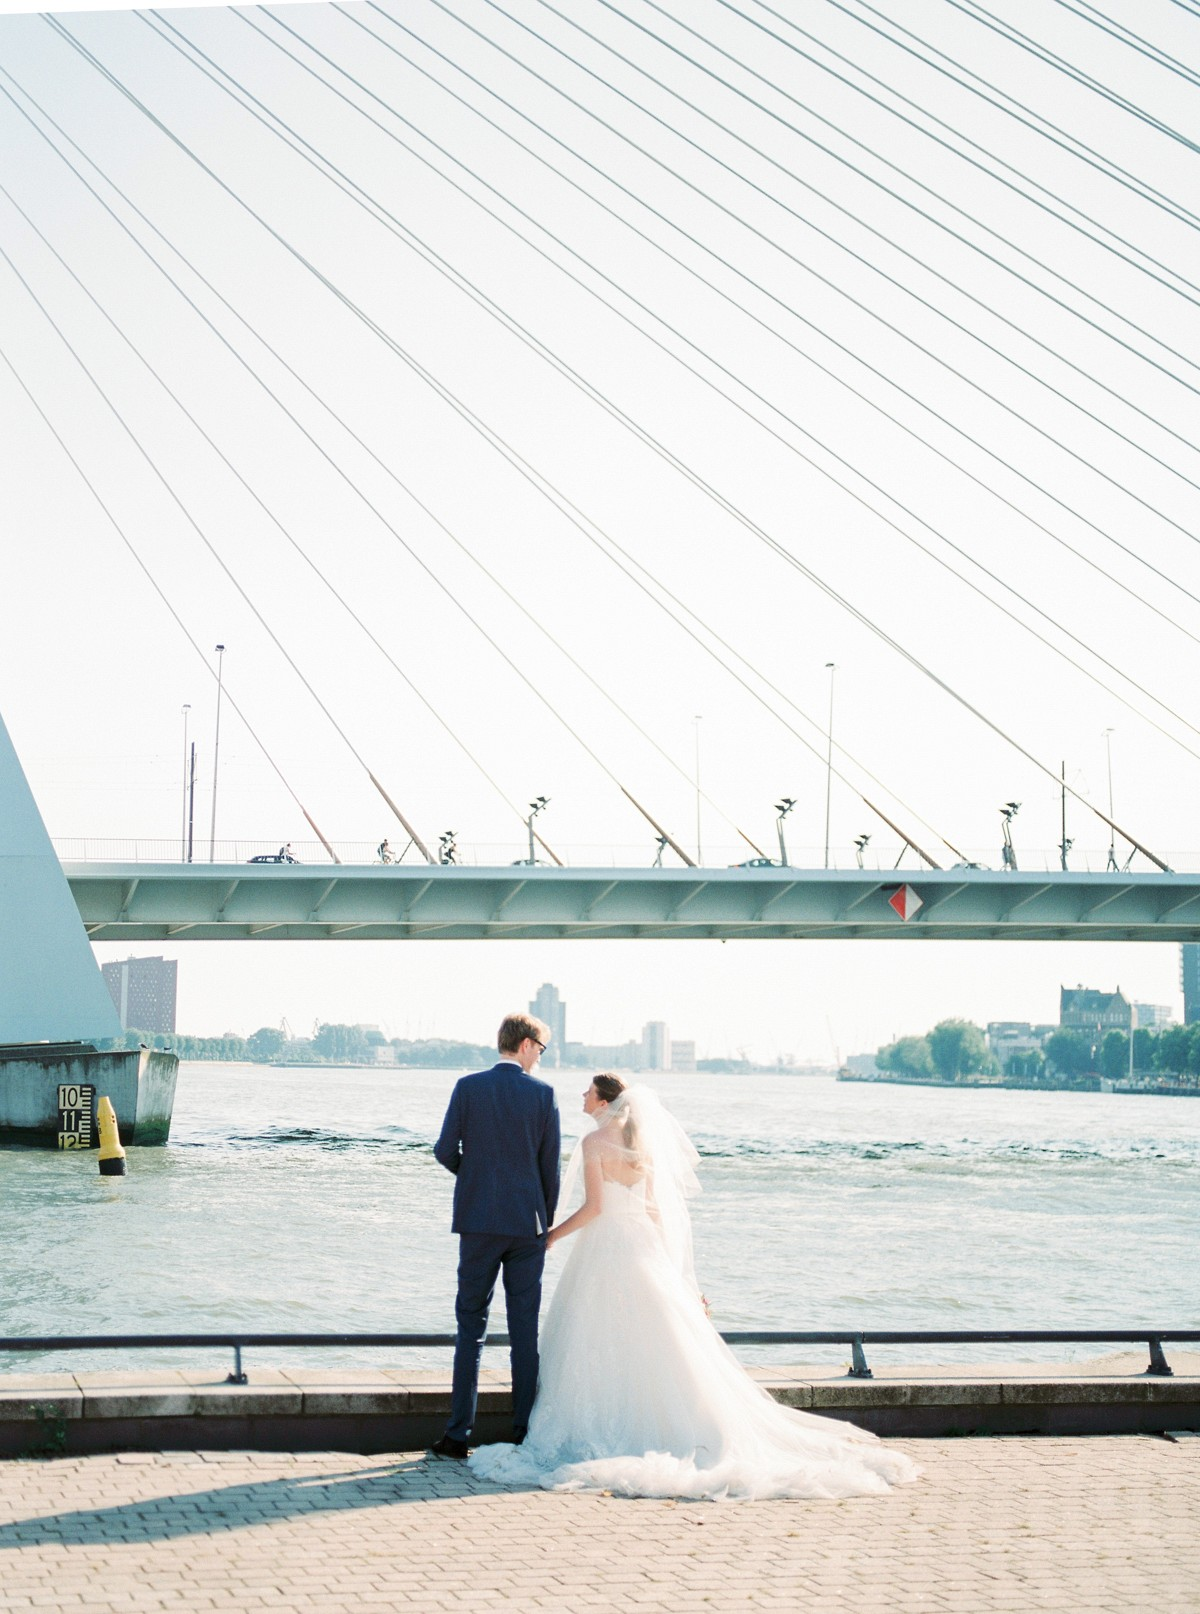 Marit and Thijs' Outdoor Wedding in the Netherlands